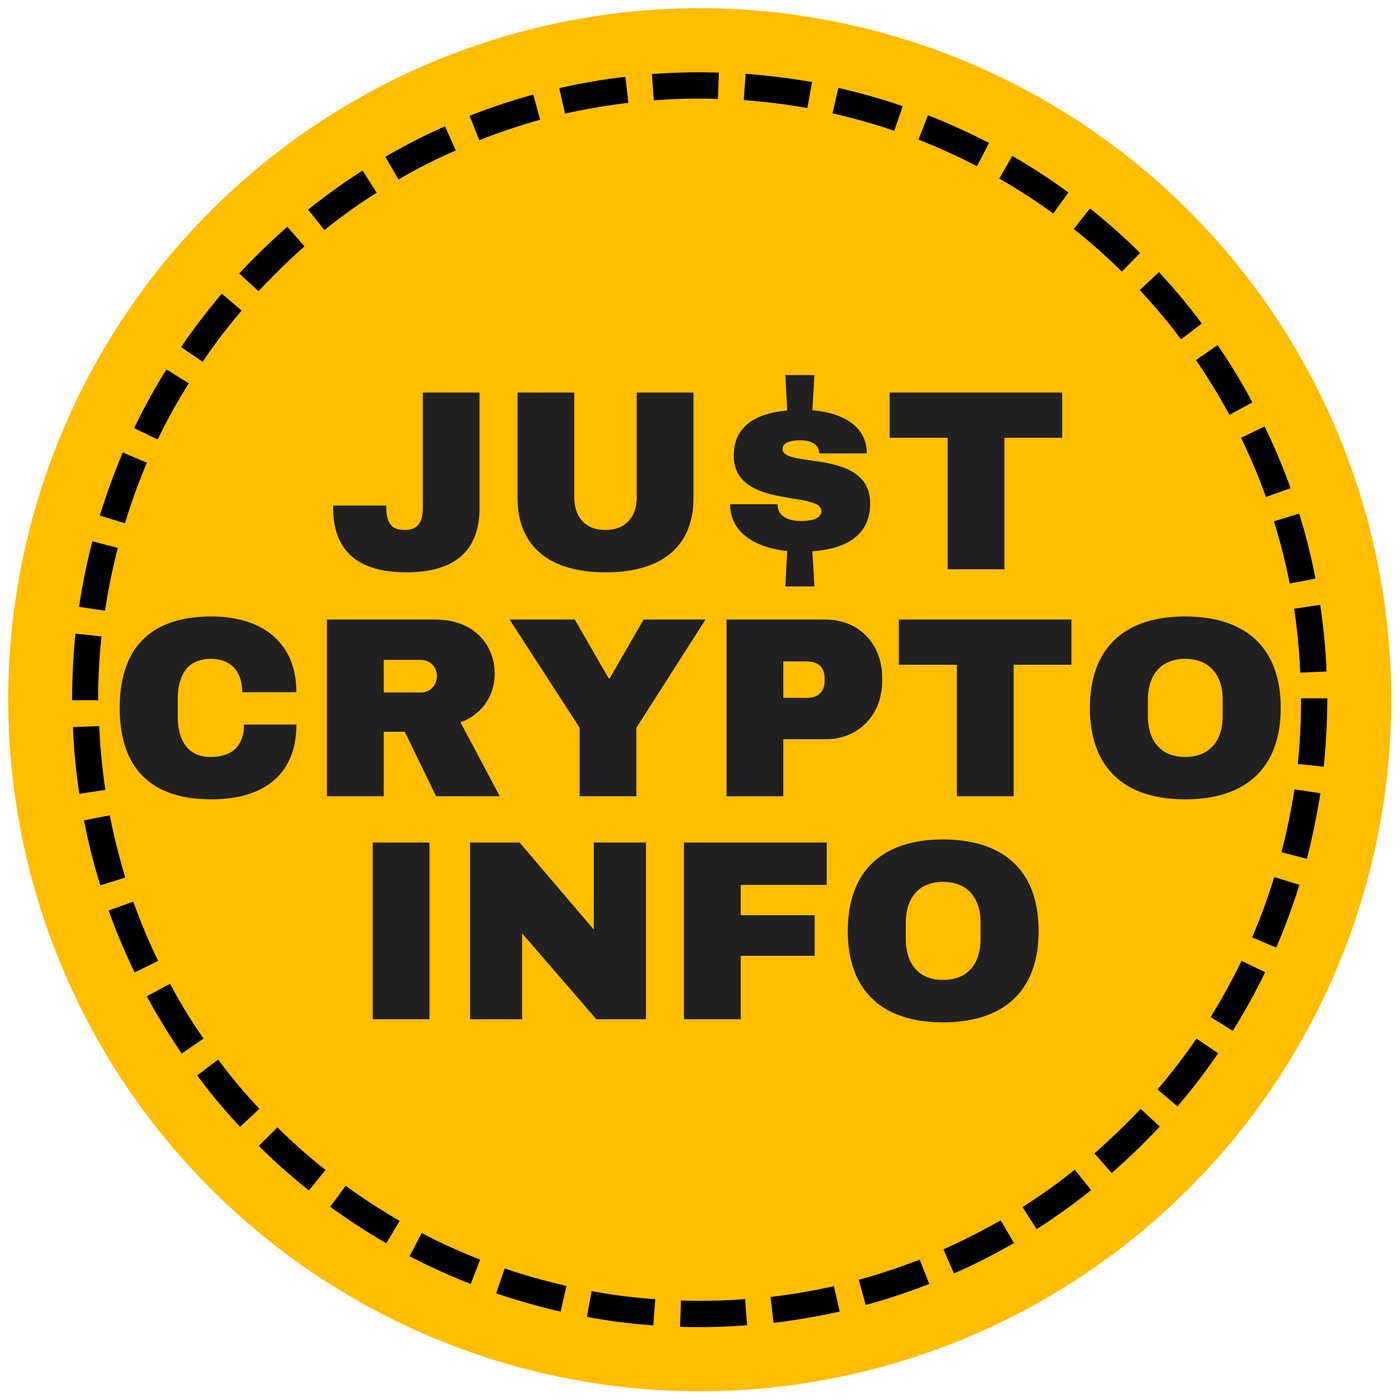 Just Crypto Infologo